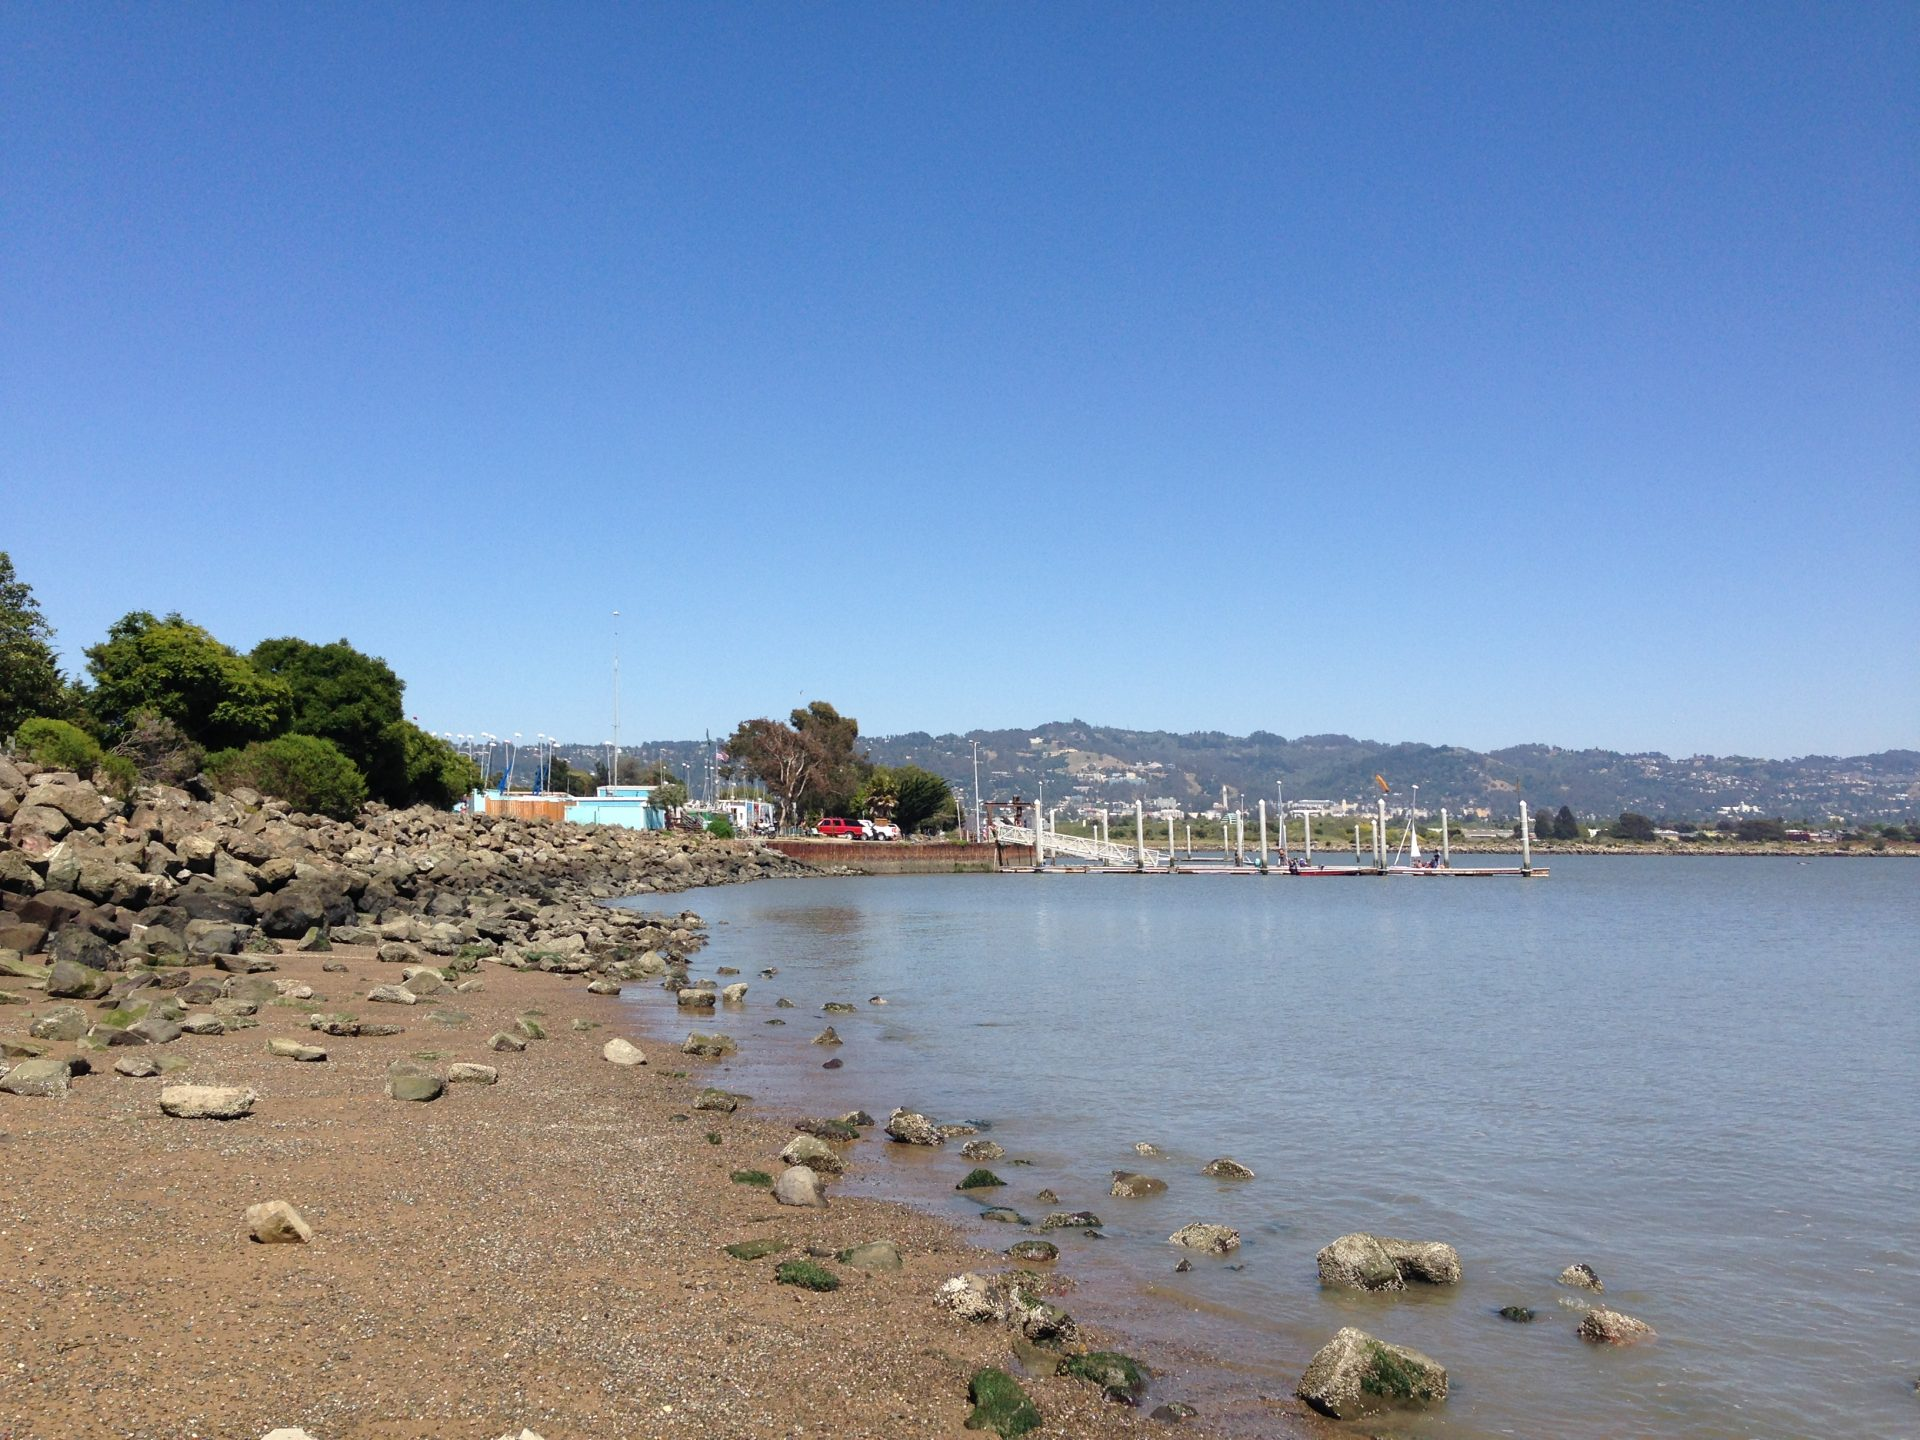 Pebbly beach in foreground, and floating dock in distance along the shore